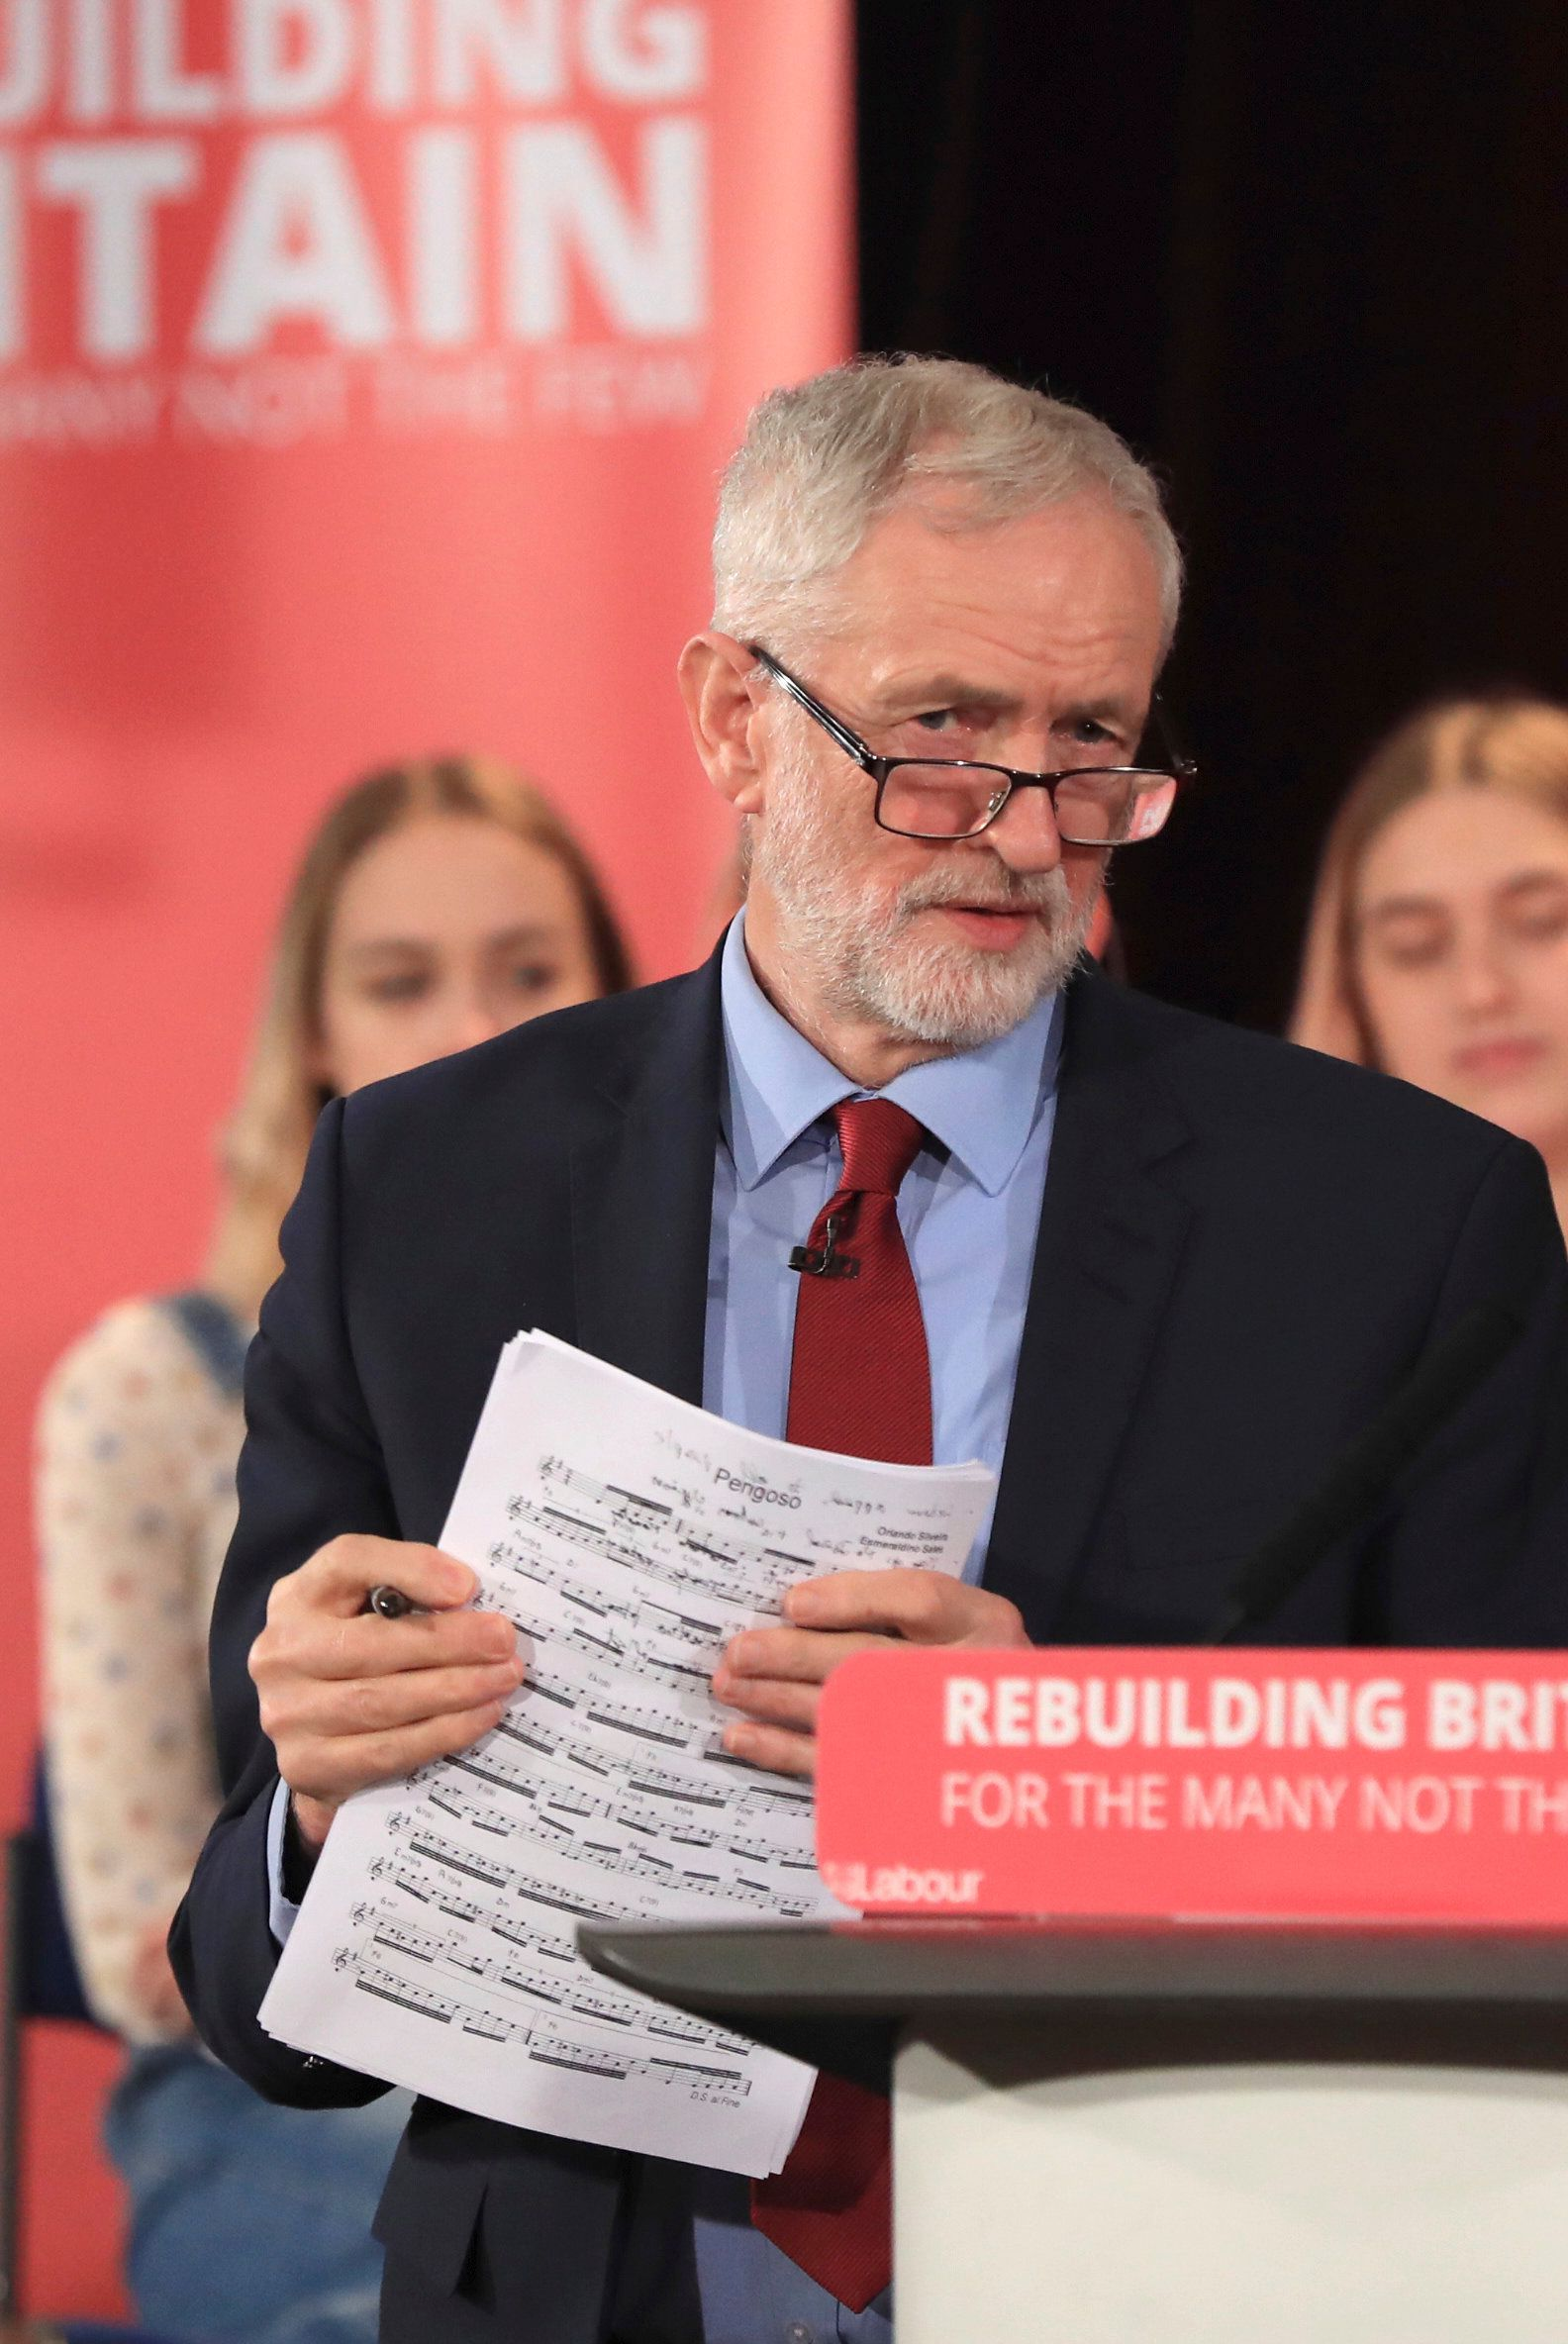 Labour's Constructive Ambiguity On Brexit Is On Its Last